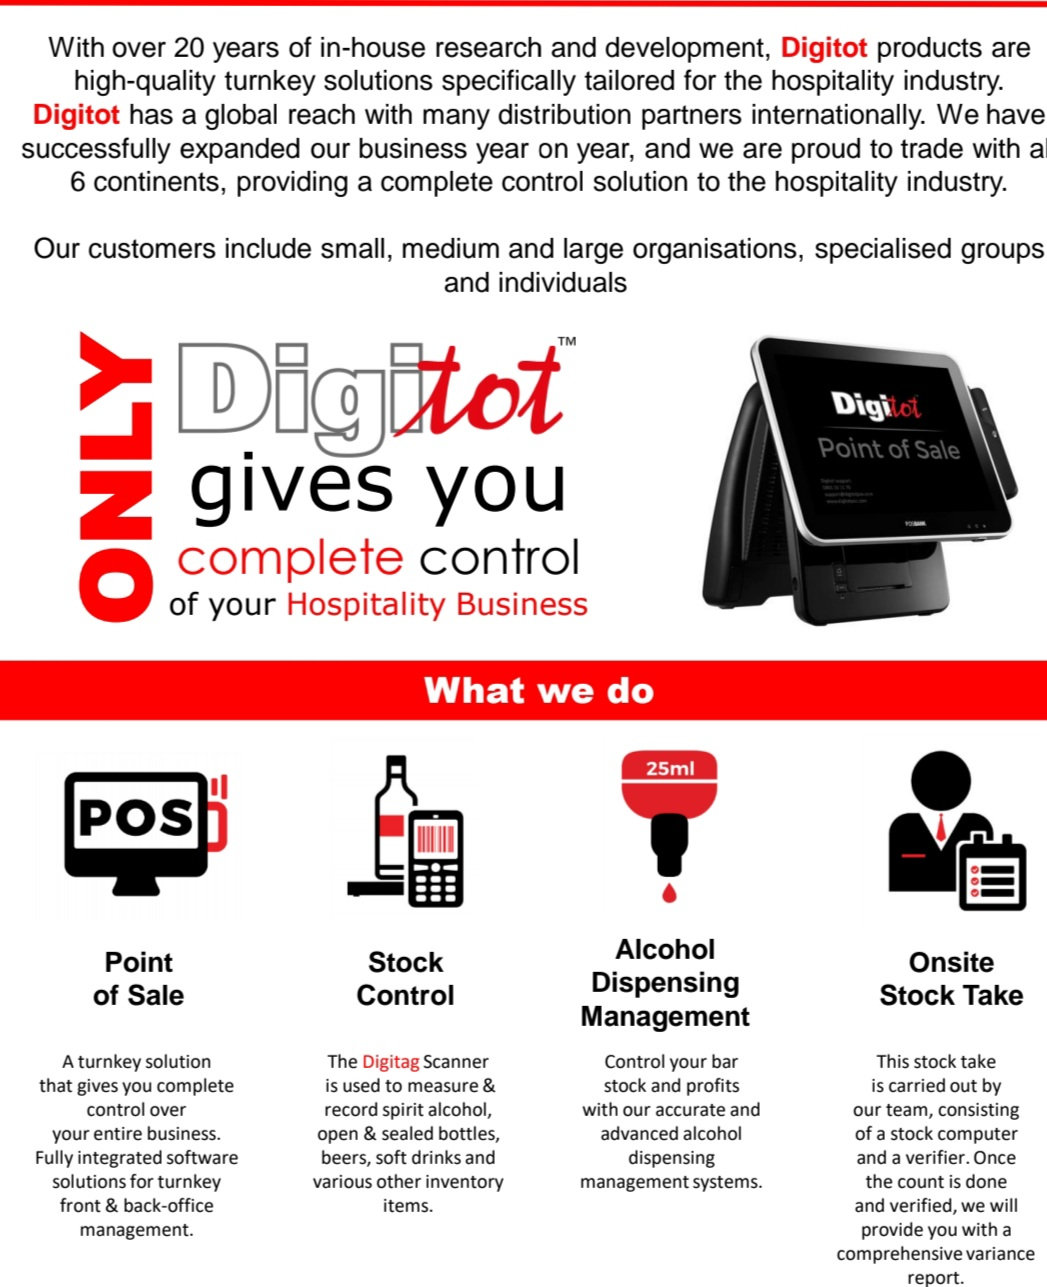 Point of sale software, Digitot Inventory Control Software